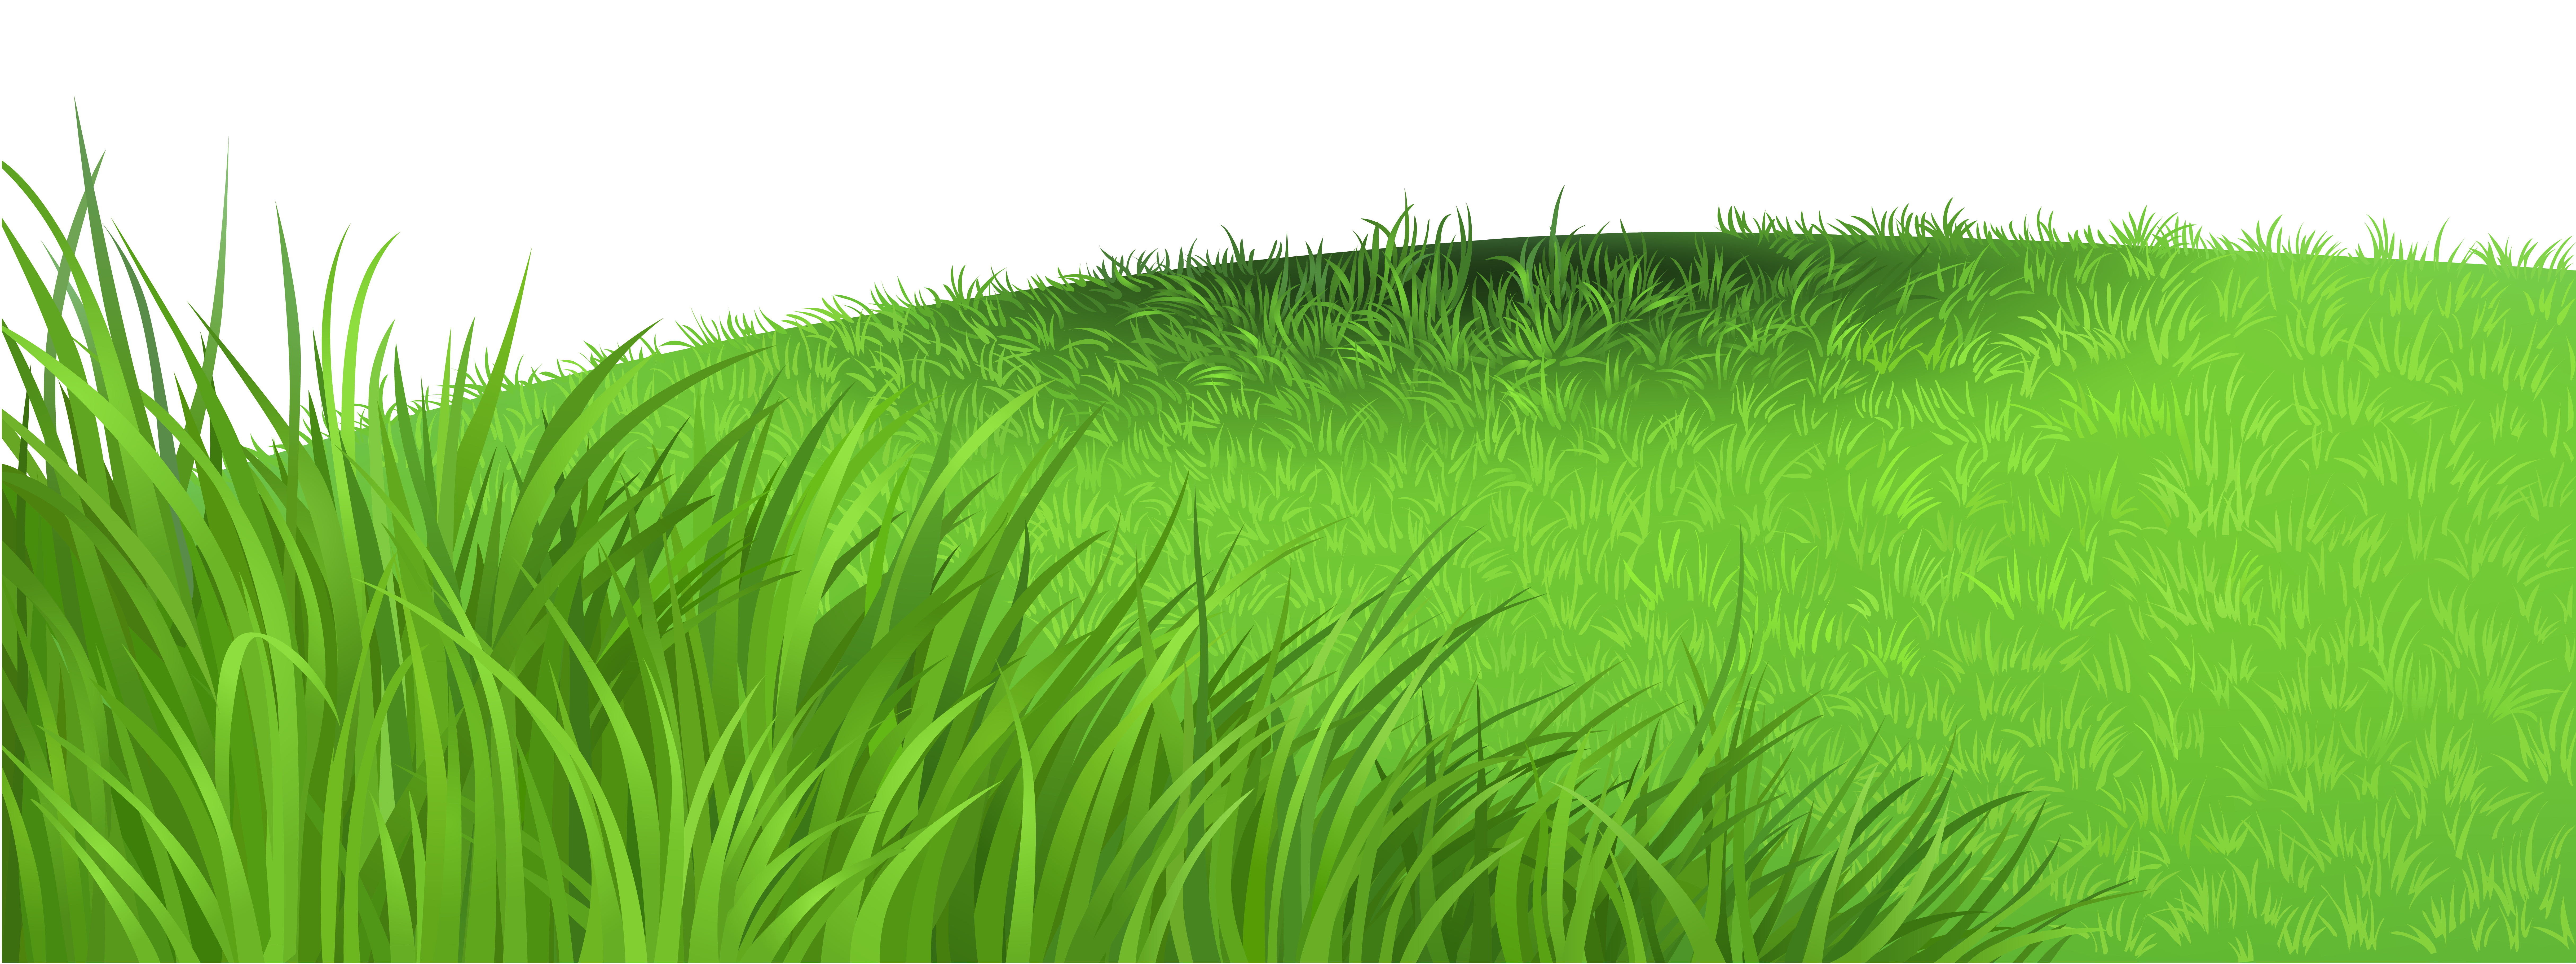 png free download Valley clipart grassland. Grass deco png picture.